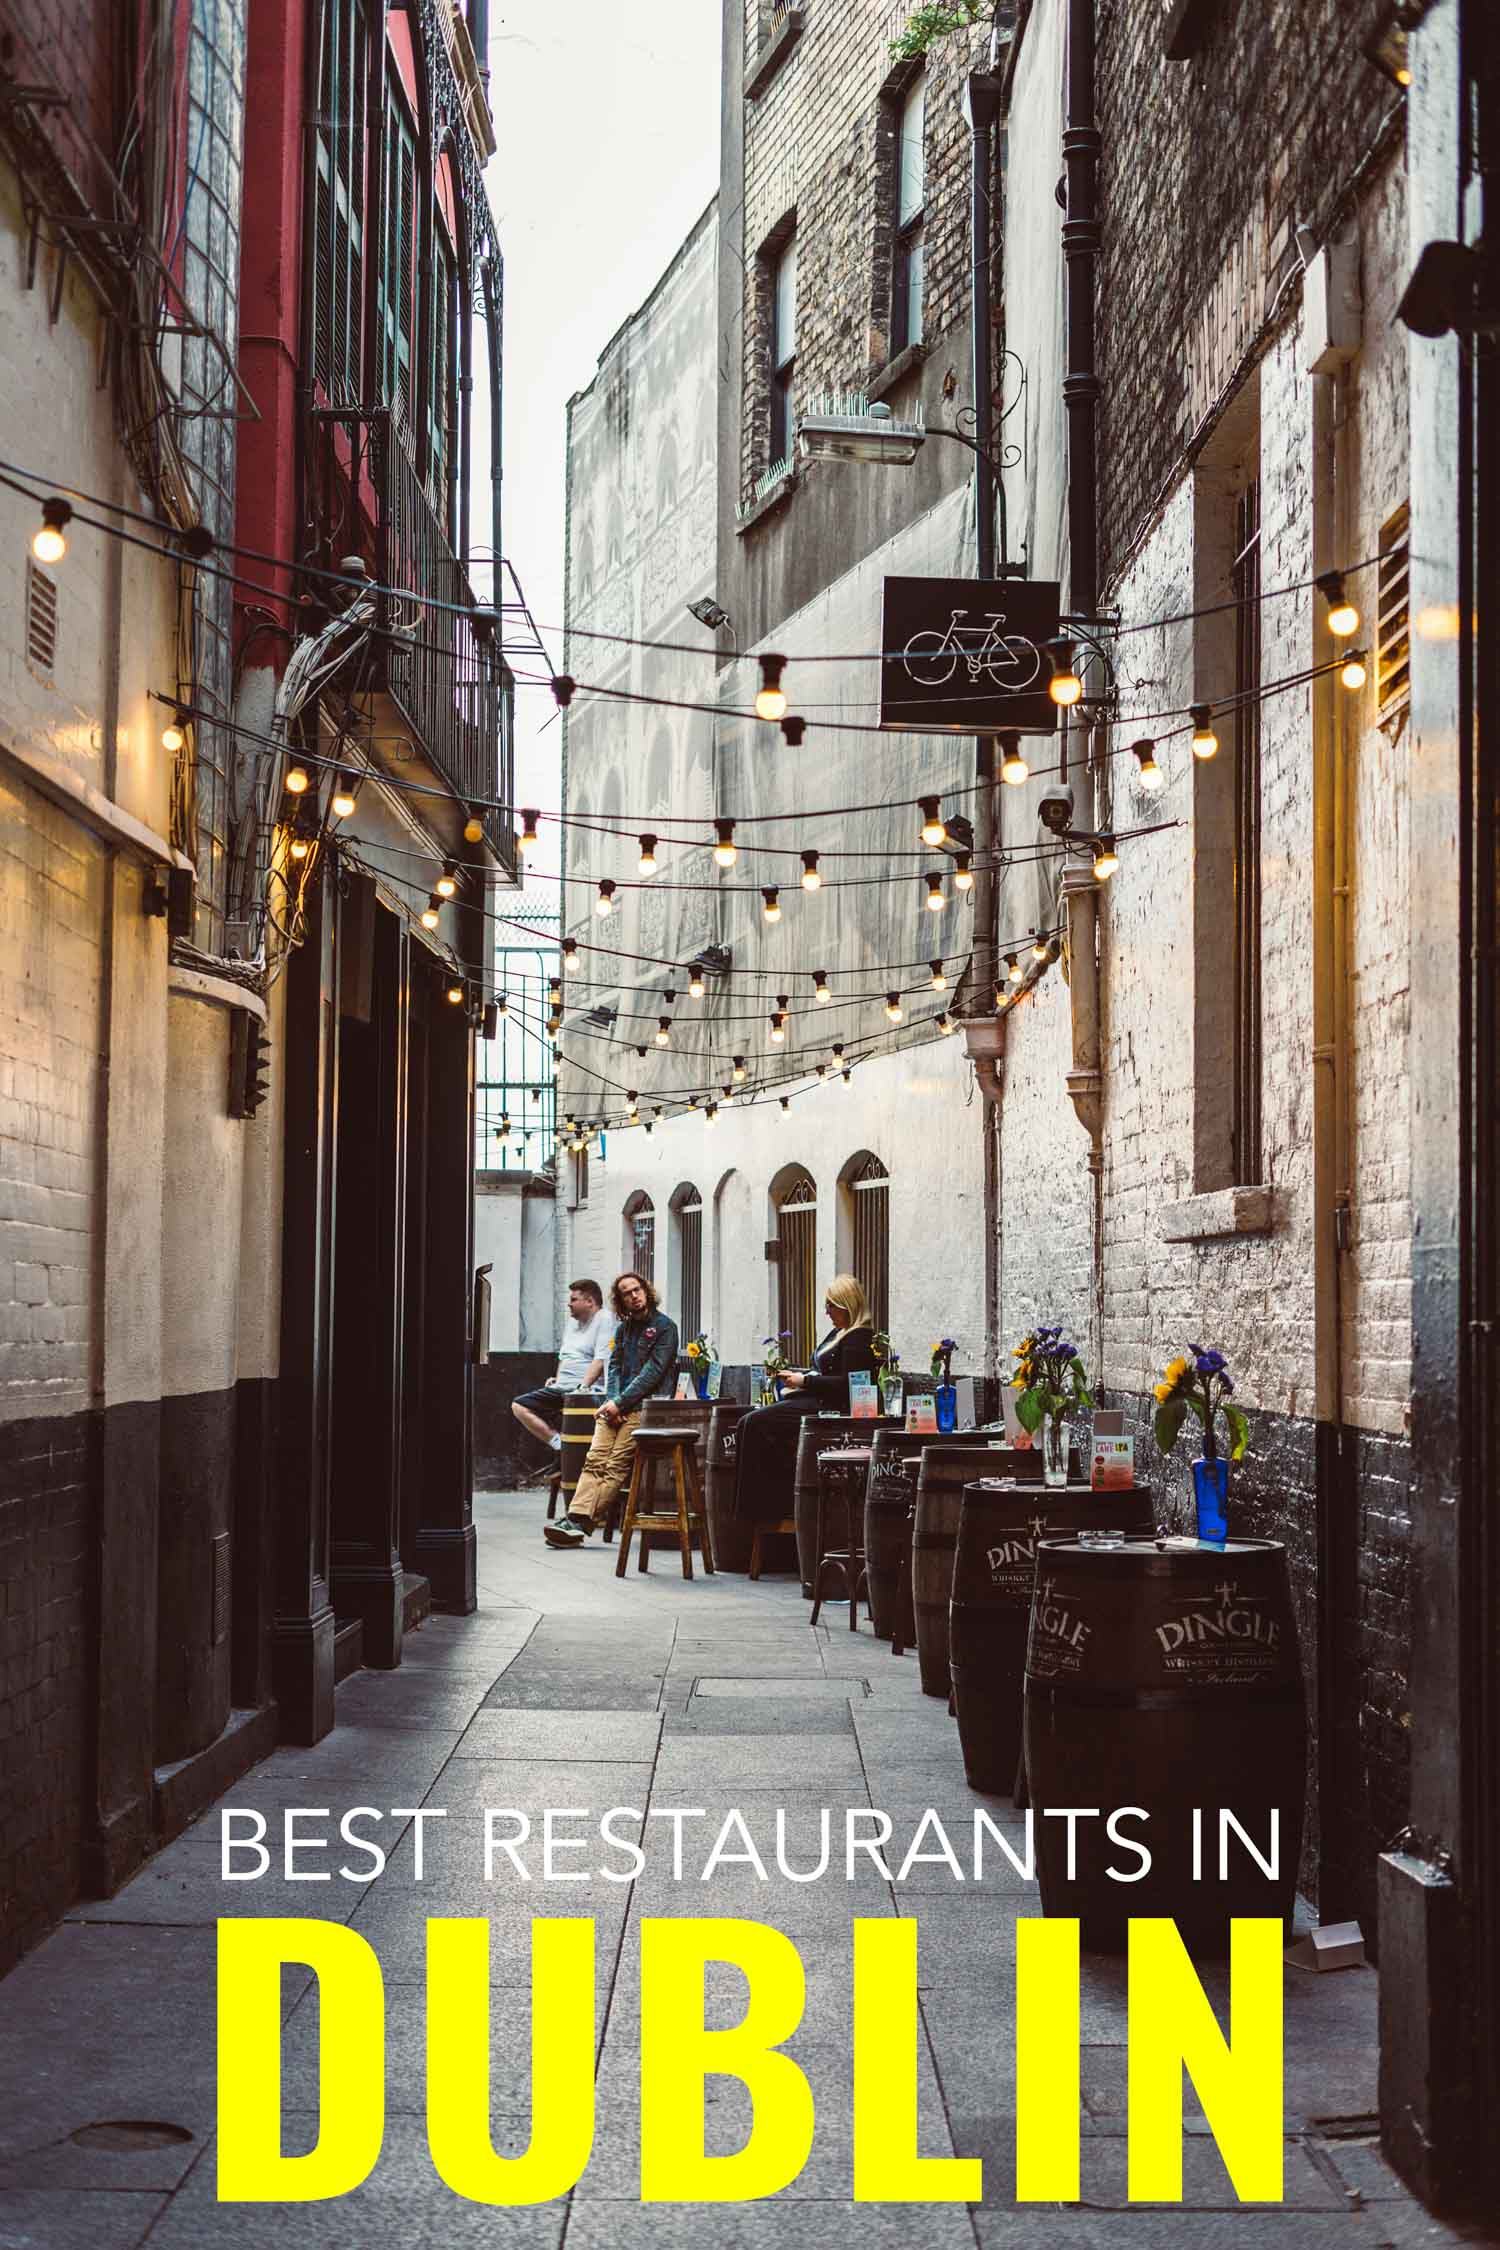 Alley where locals are eating in some of the best places to eat in Dublin